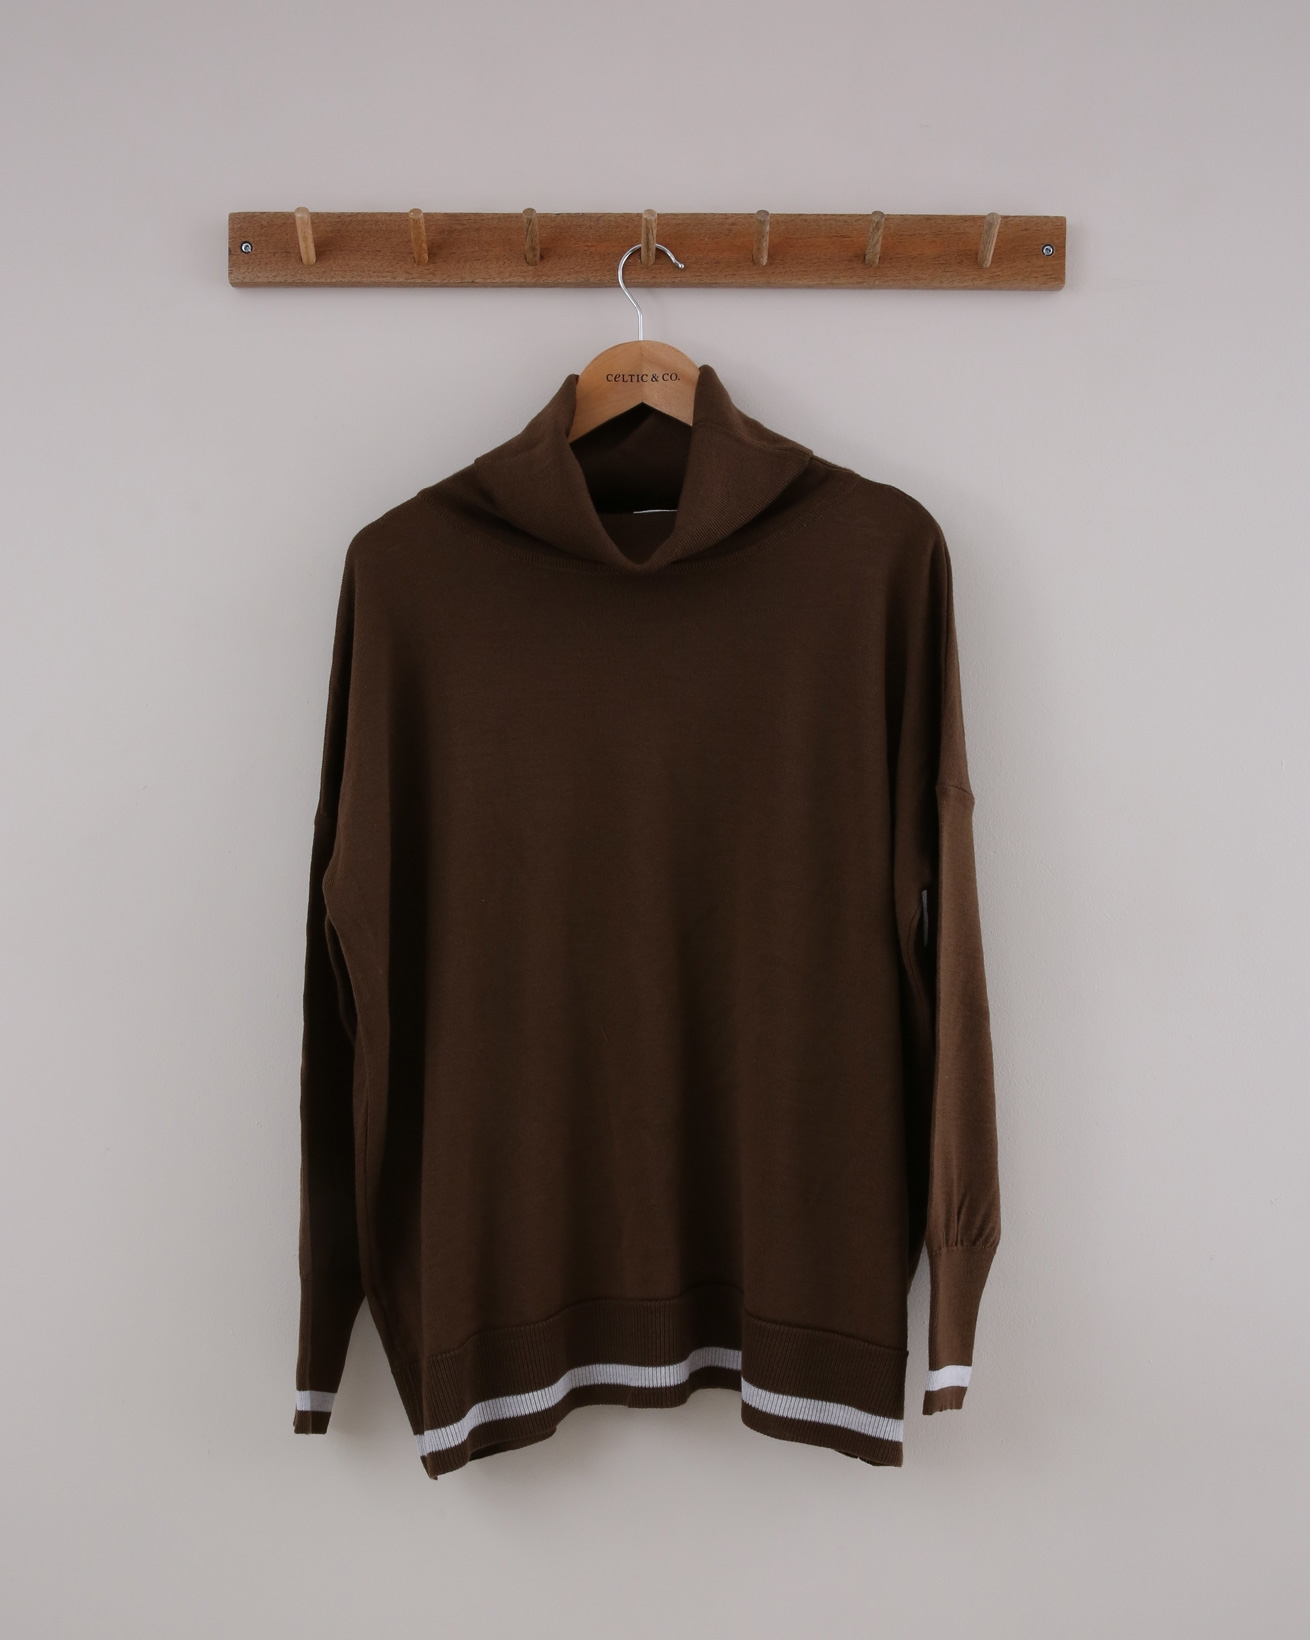 Slouchy Merino Roll Neck - Small - Brown & Grey Tipped - 1410